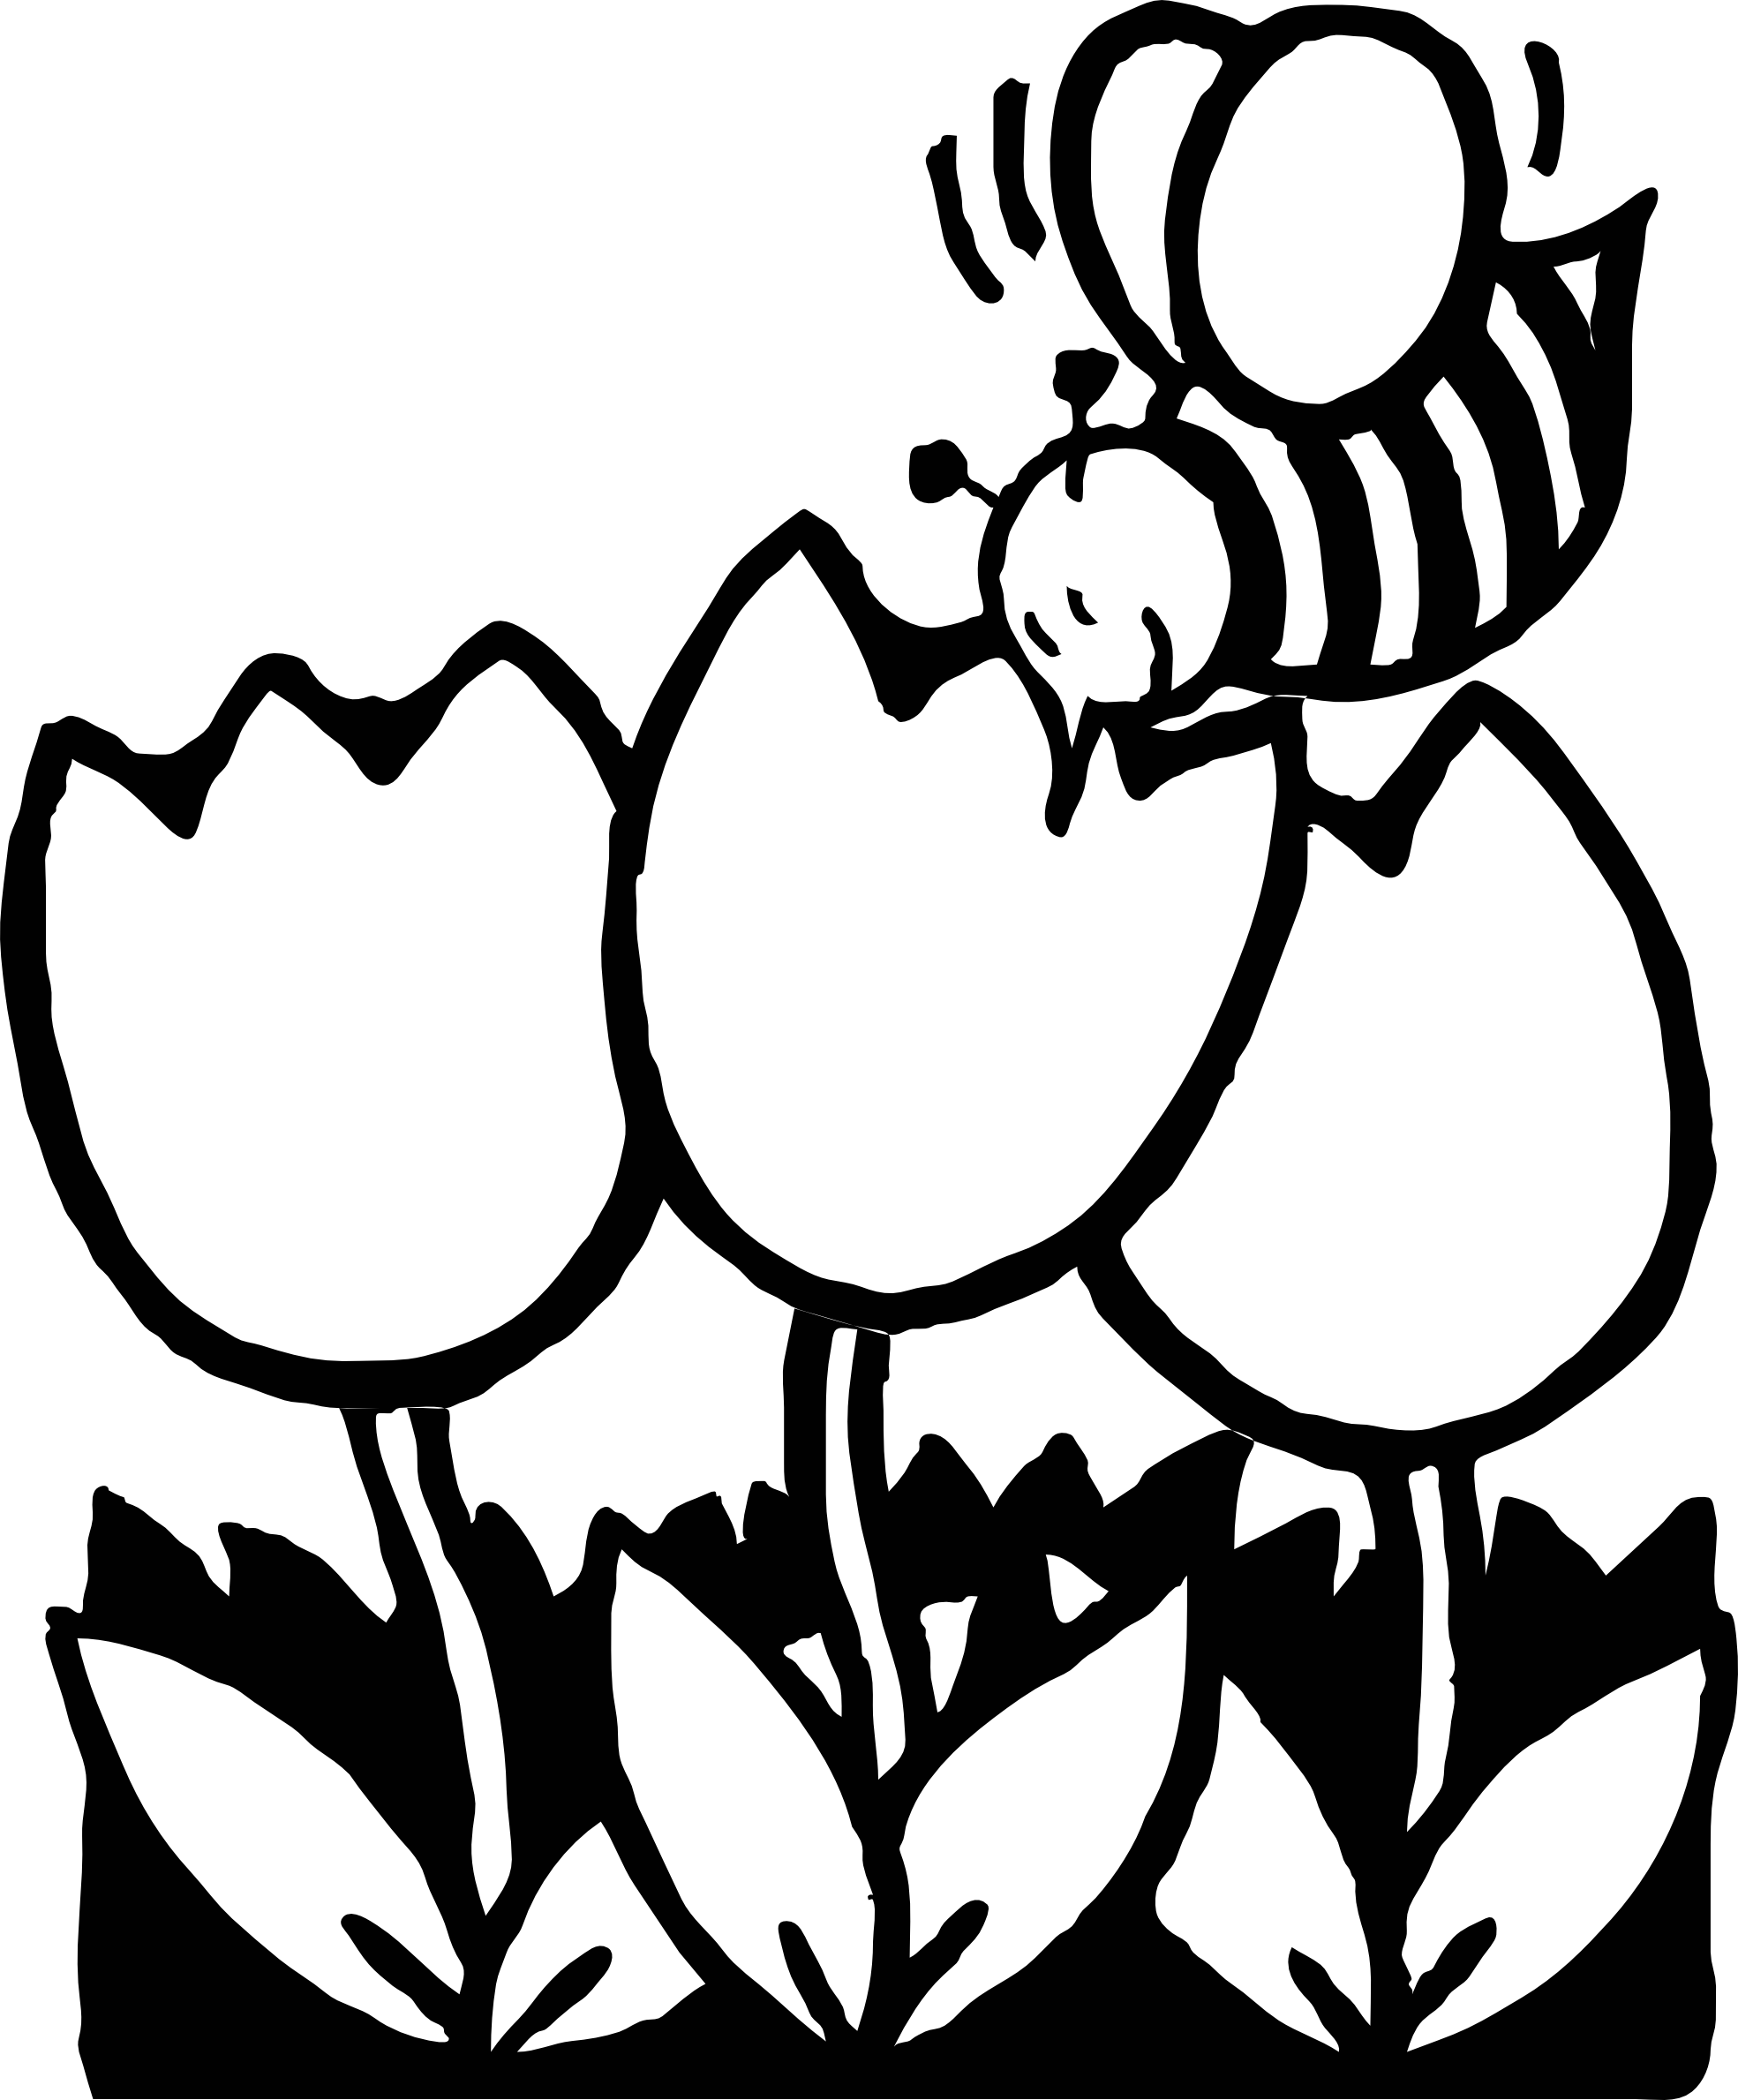 Flower clipart coloring clip freeuse library Bee Outline Drawing at GetDrawings.com | Free for personal use Bee ... clip freeuse library